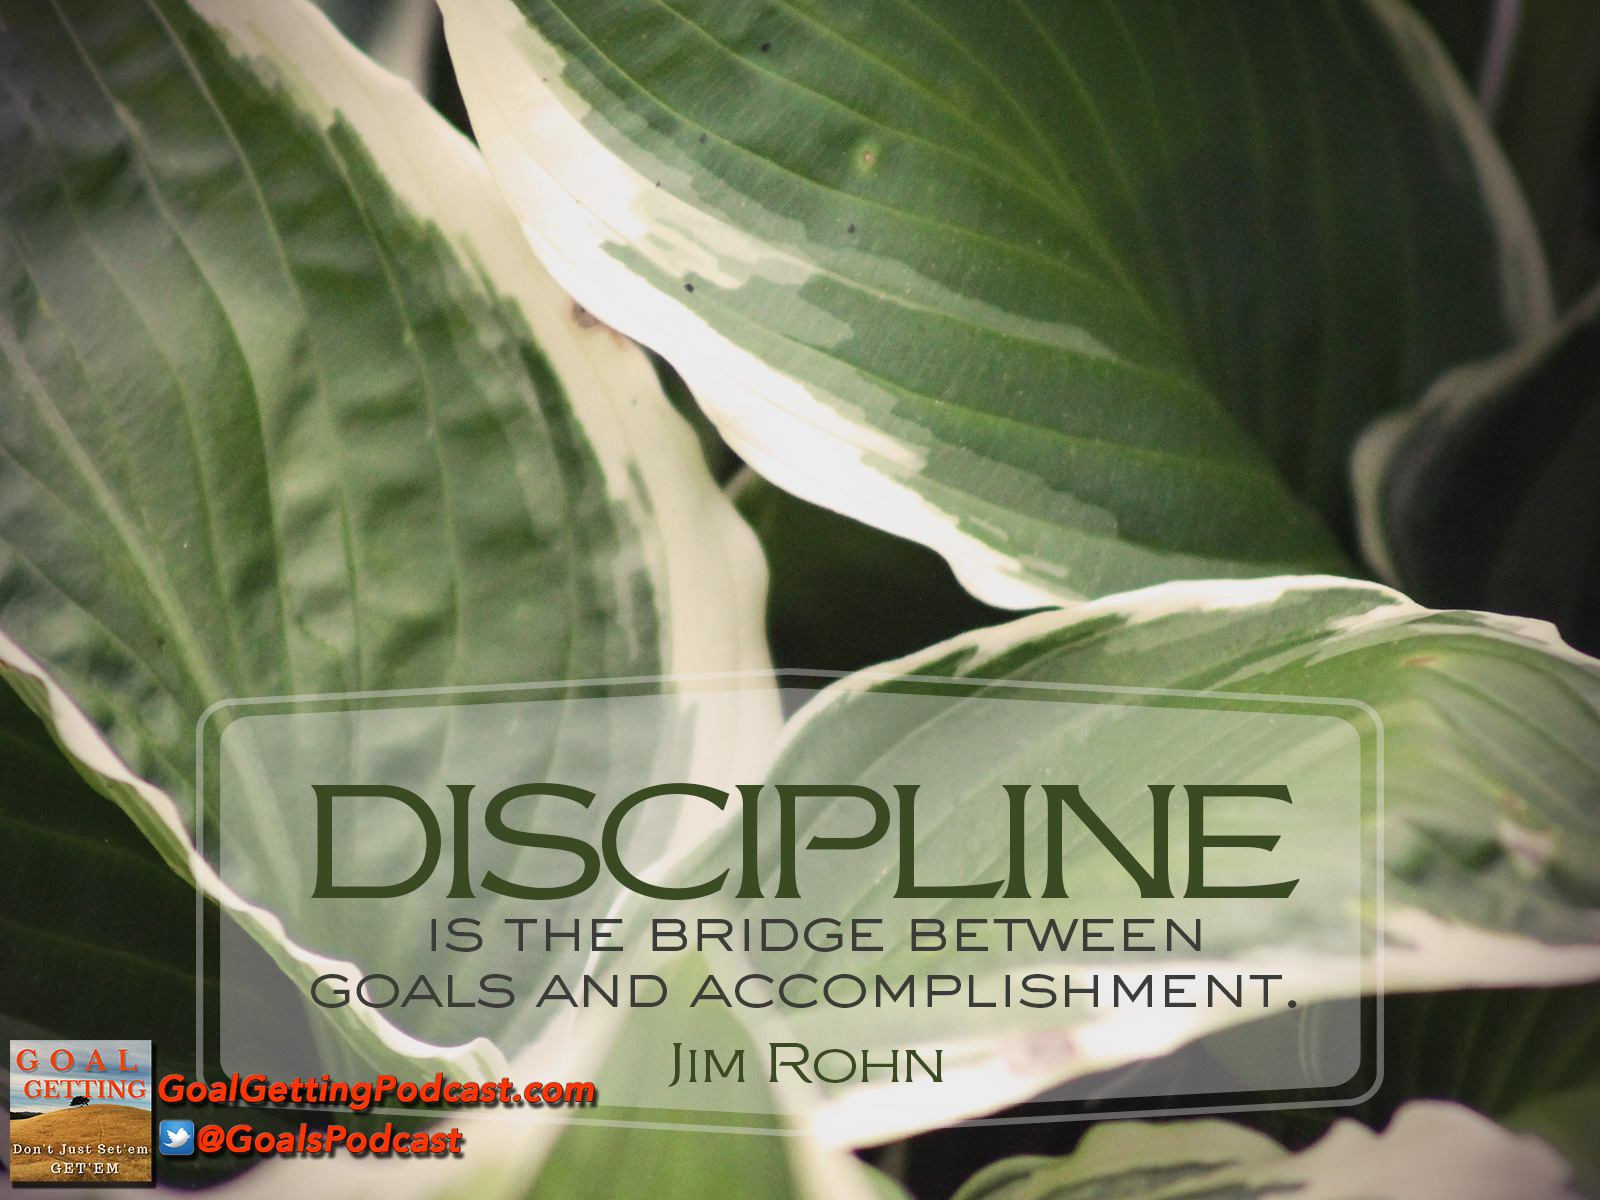 Discipline is the bridge between goals and accomplishment - Jim Rohn